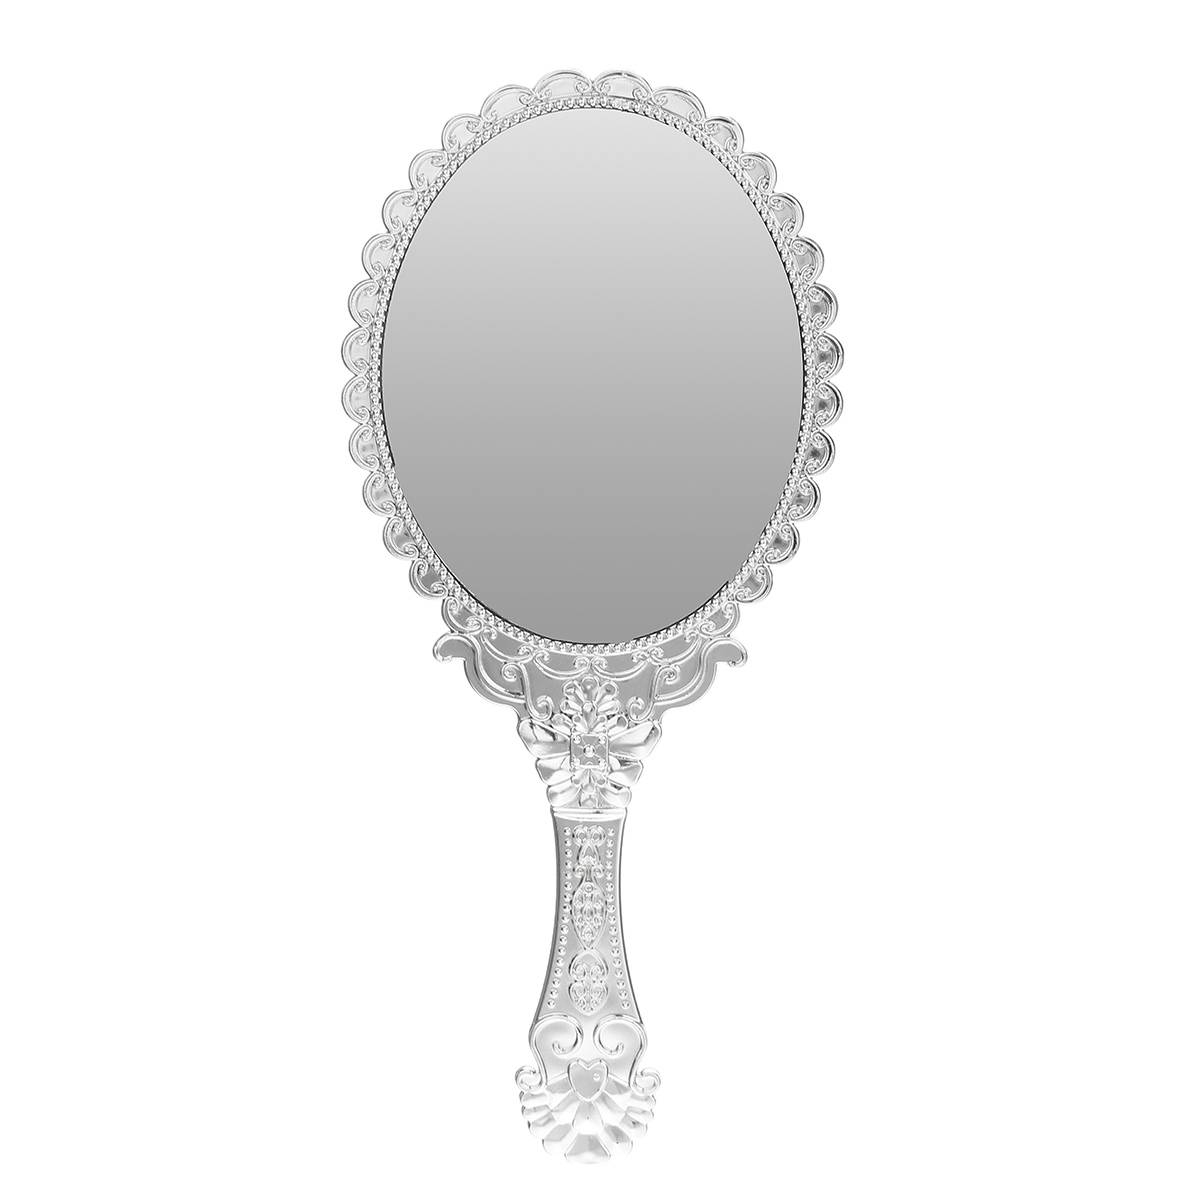 Popular Vintage Silver Mirrors-Buy Cheap Vintage Silver Mirrors with regard to Cheap Vintage Mirrors (Image 21 of 25)